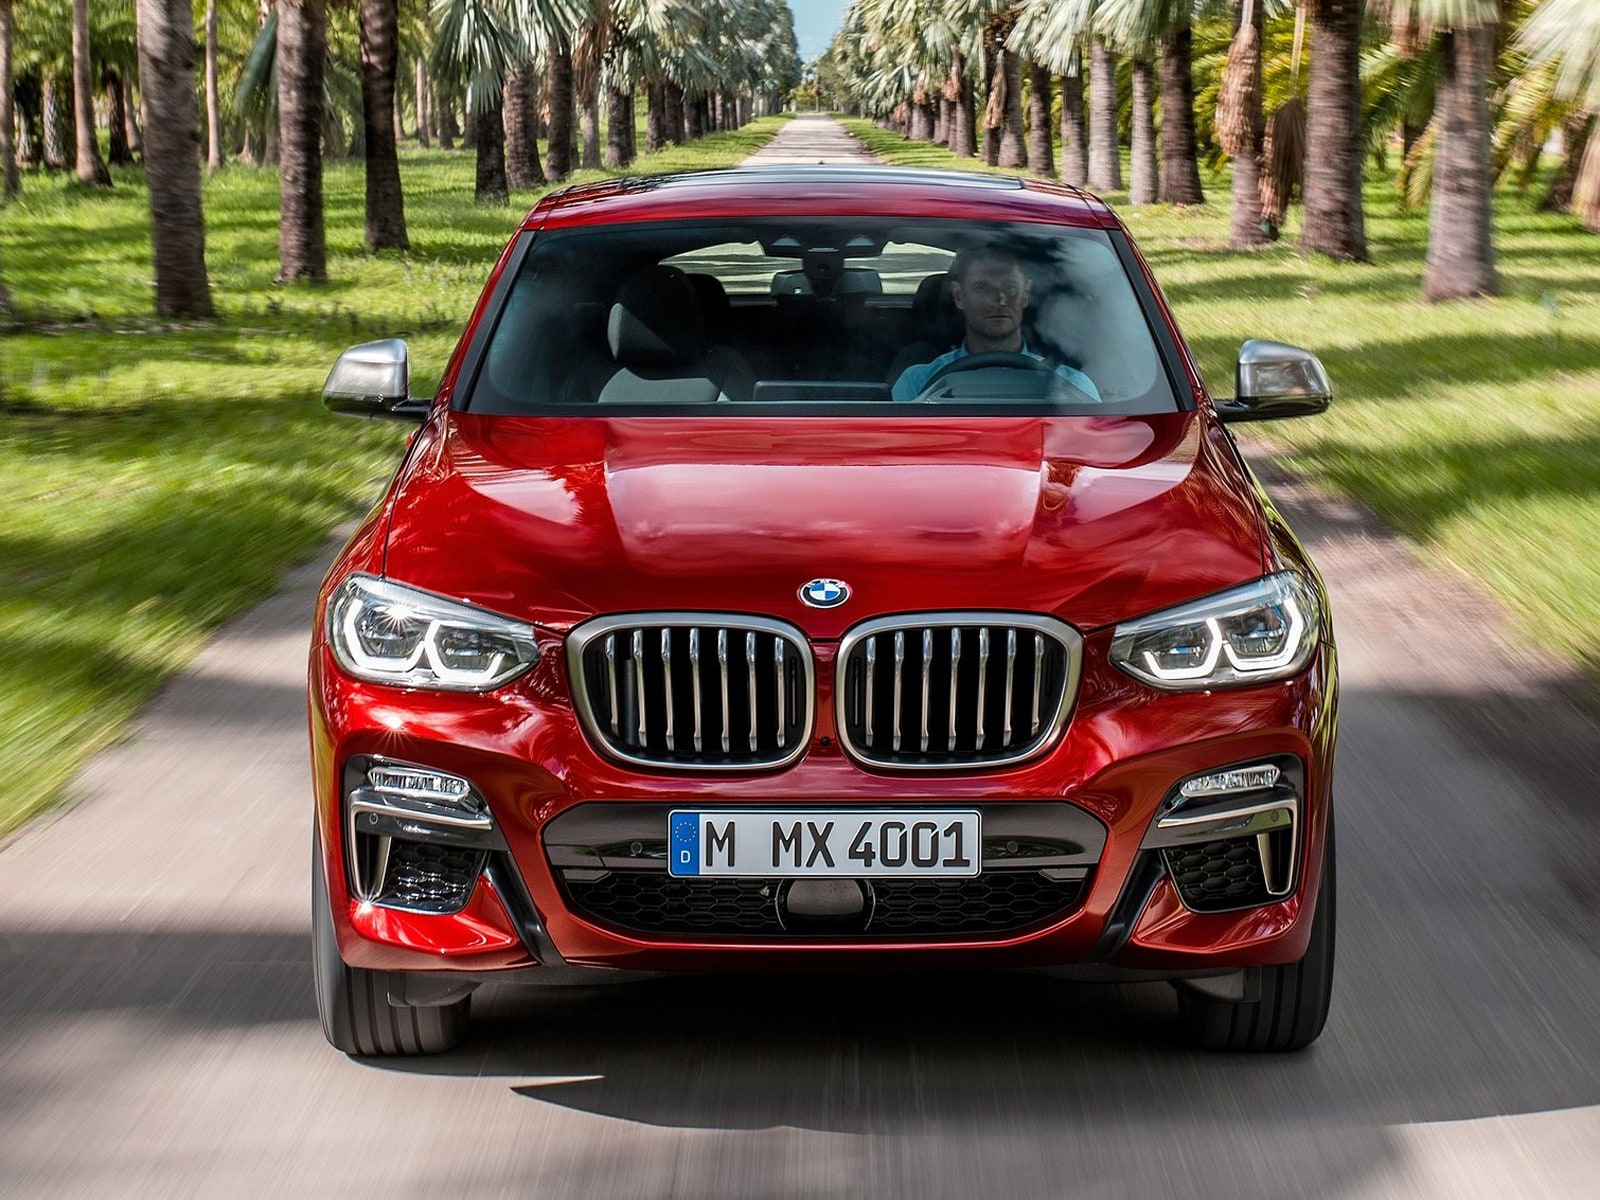 bmw x4 2018 prime fotografie e informazioni salone di ginevra 2018 panoramauto. Black Bedroom Furniture Sets. Home Design Ideas